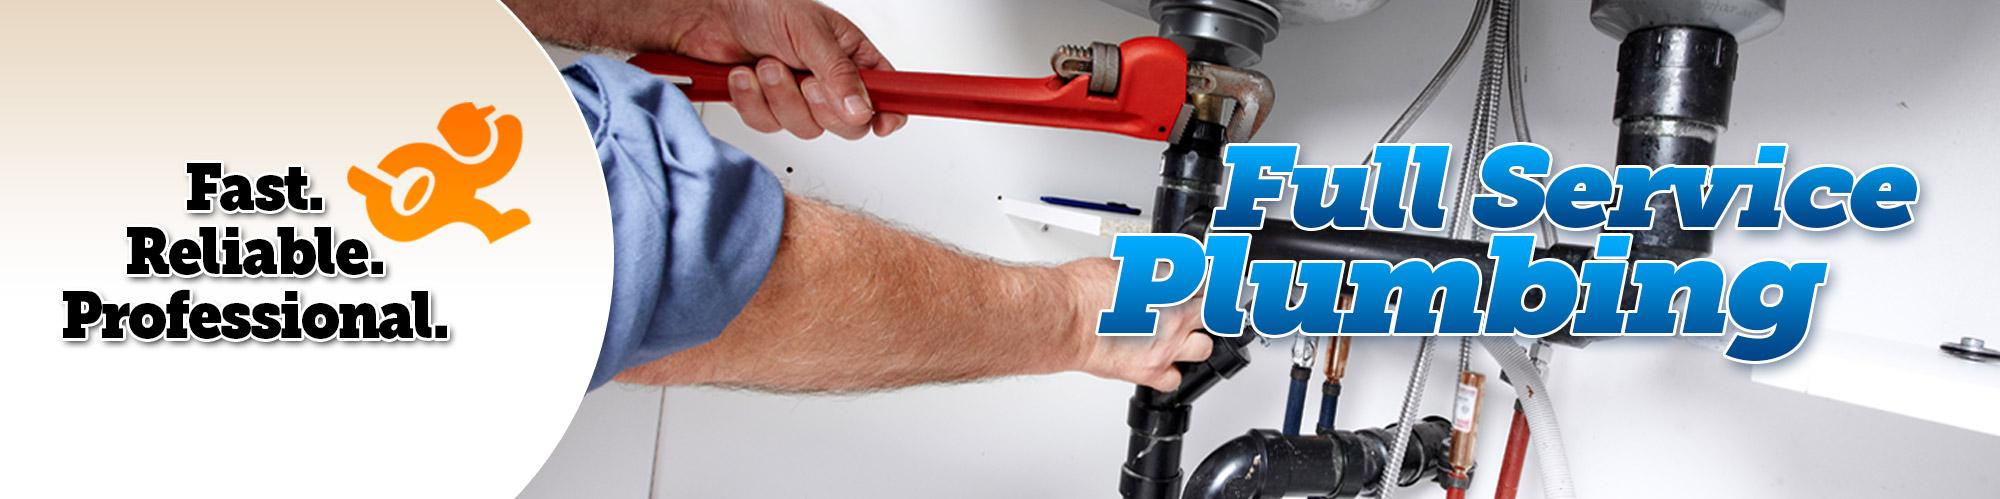 Full-Service Plumbing by Budget Rooter in New Castle County, DE